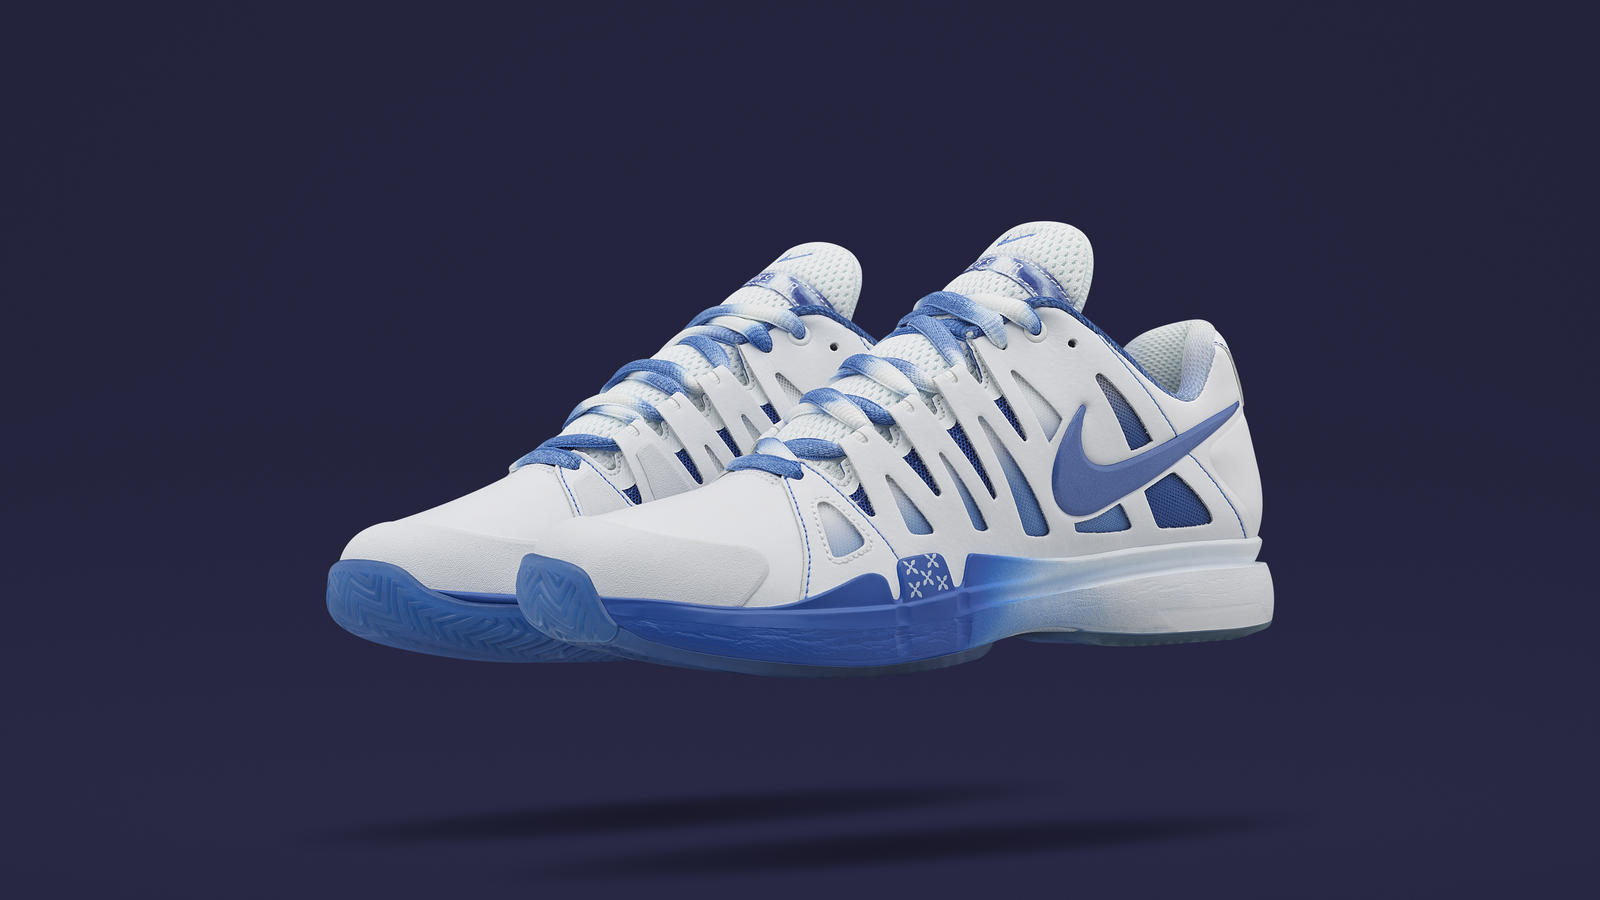 Nikecourt zoom vapor 9 tour x colette 3 hd 1600